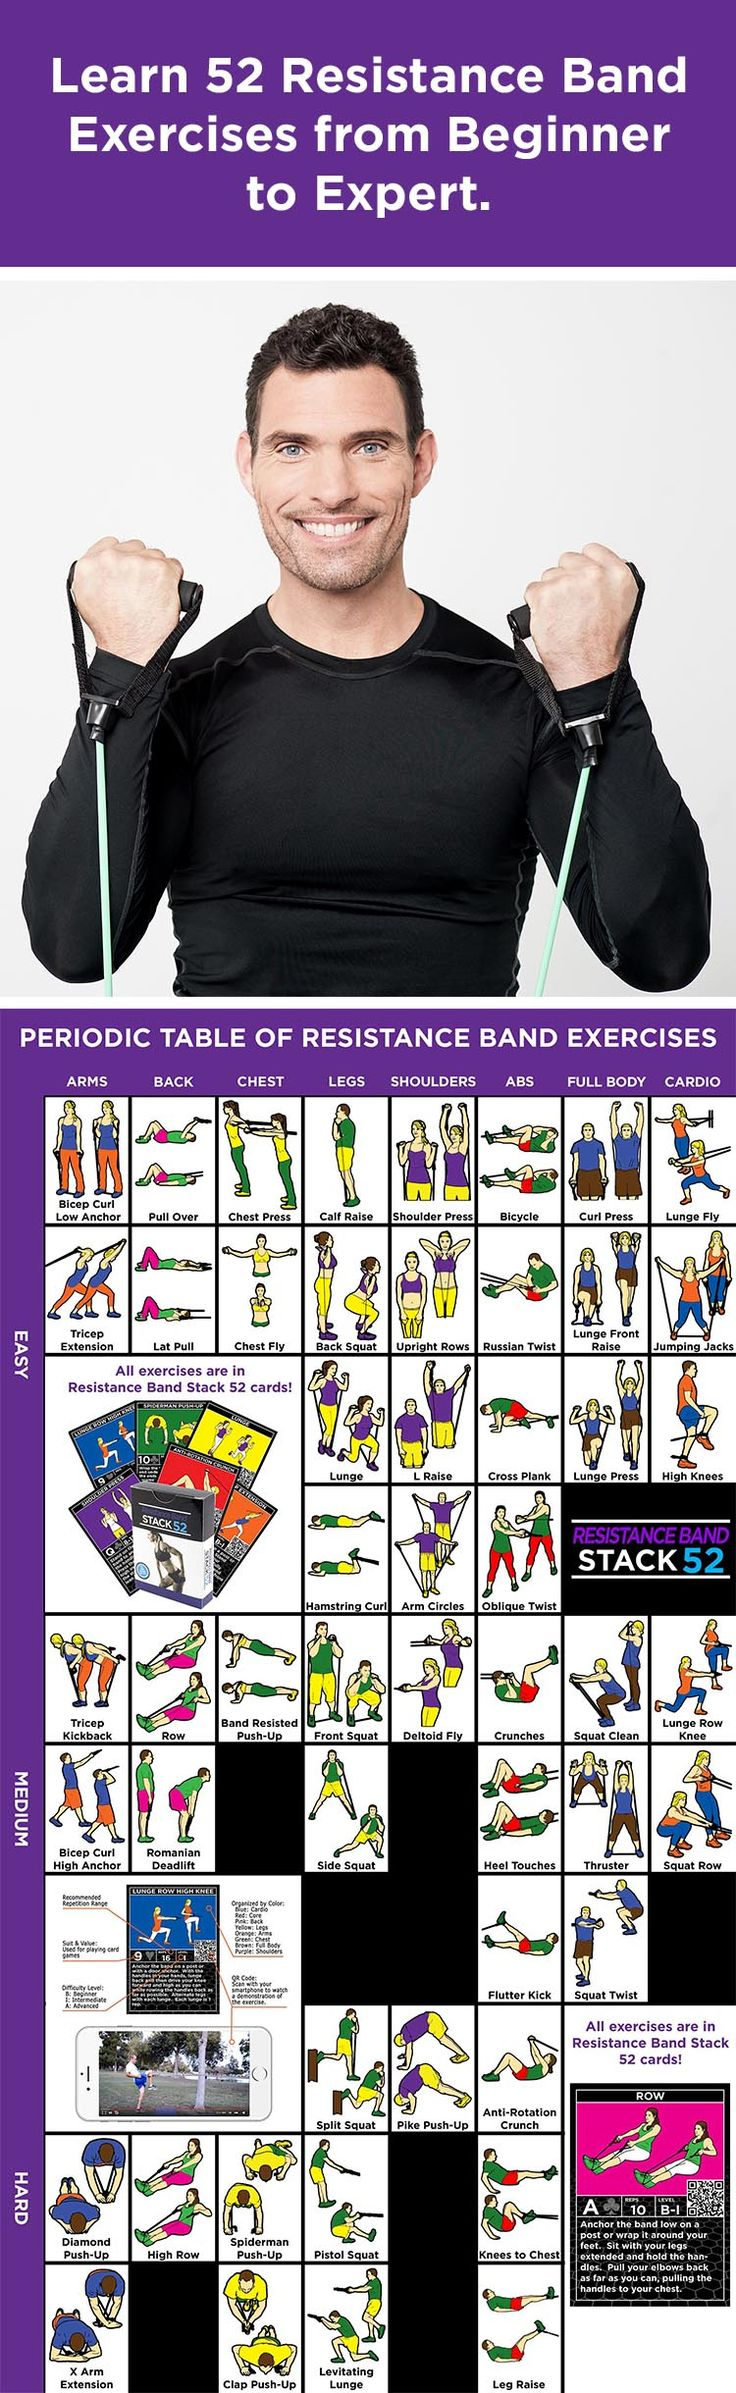 The Periodic Table of Resistance Band Exercises.  Click on any illustration for a video demonstration of the exercise!